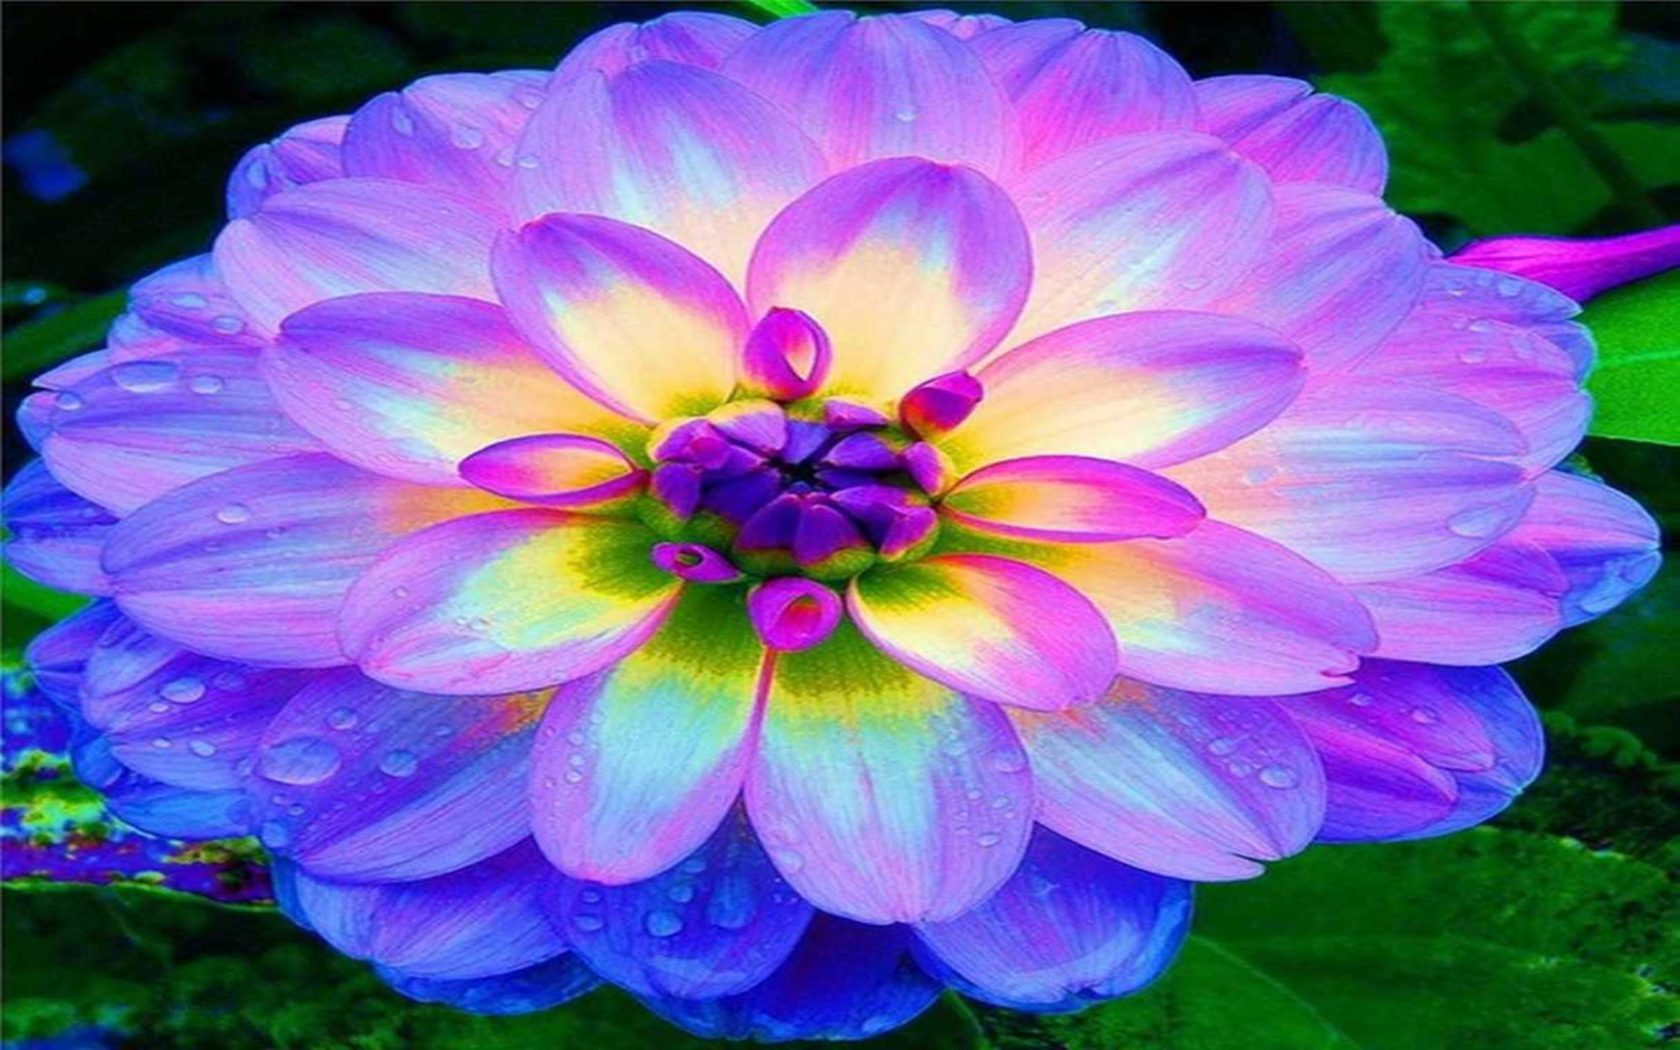 Iphone Happy New Year Wallpaper Blue Dahlia Flowers Hd Wallpapers Wallpapers13 Com